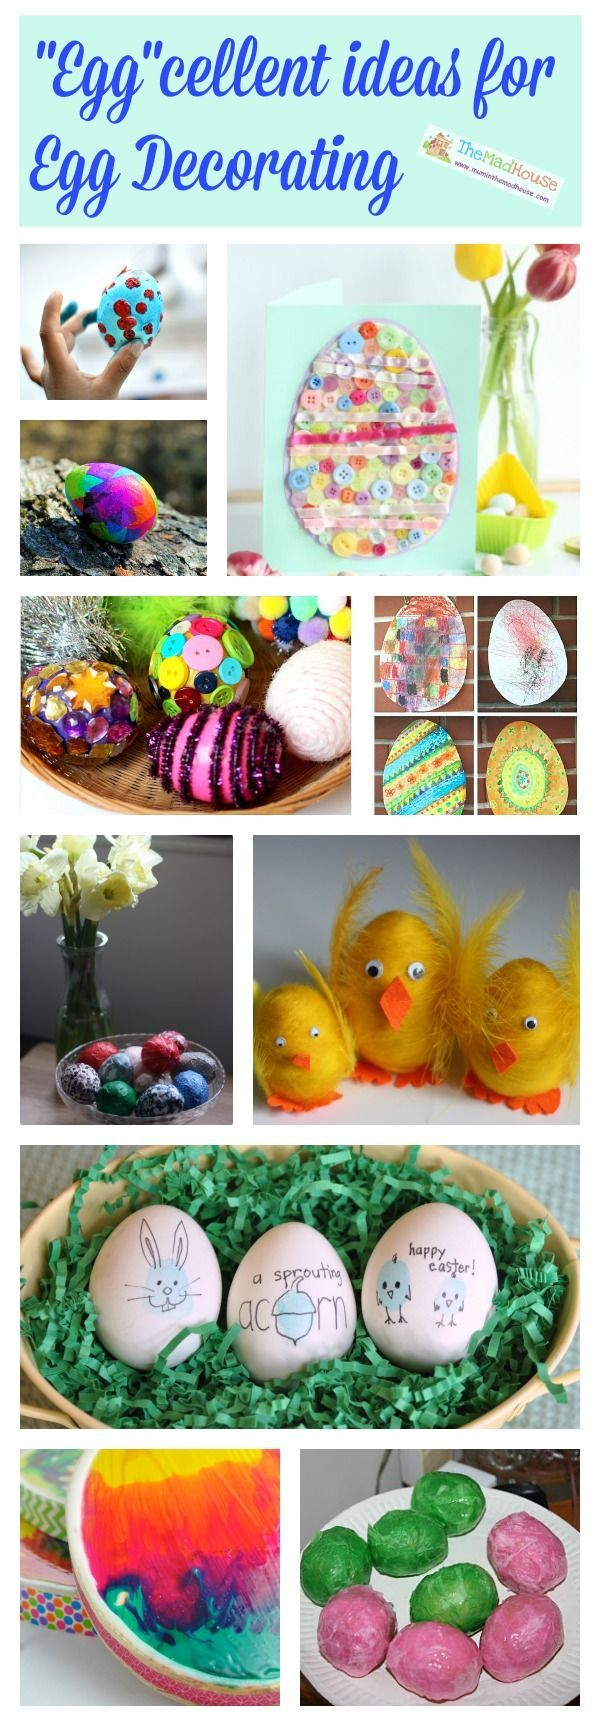 eggcellent ideas for egg decorating this easter